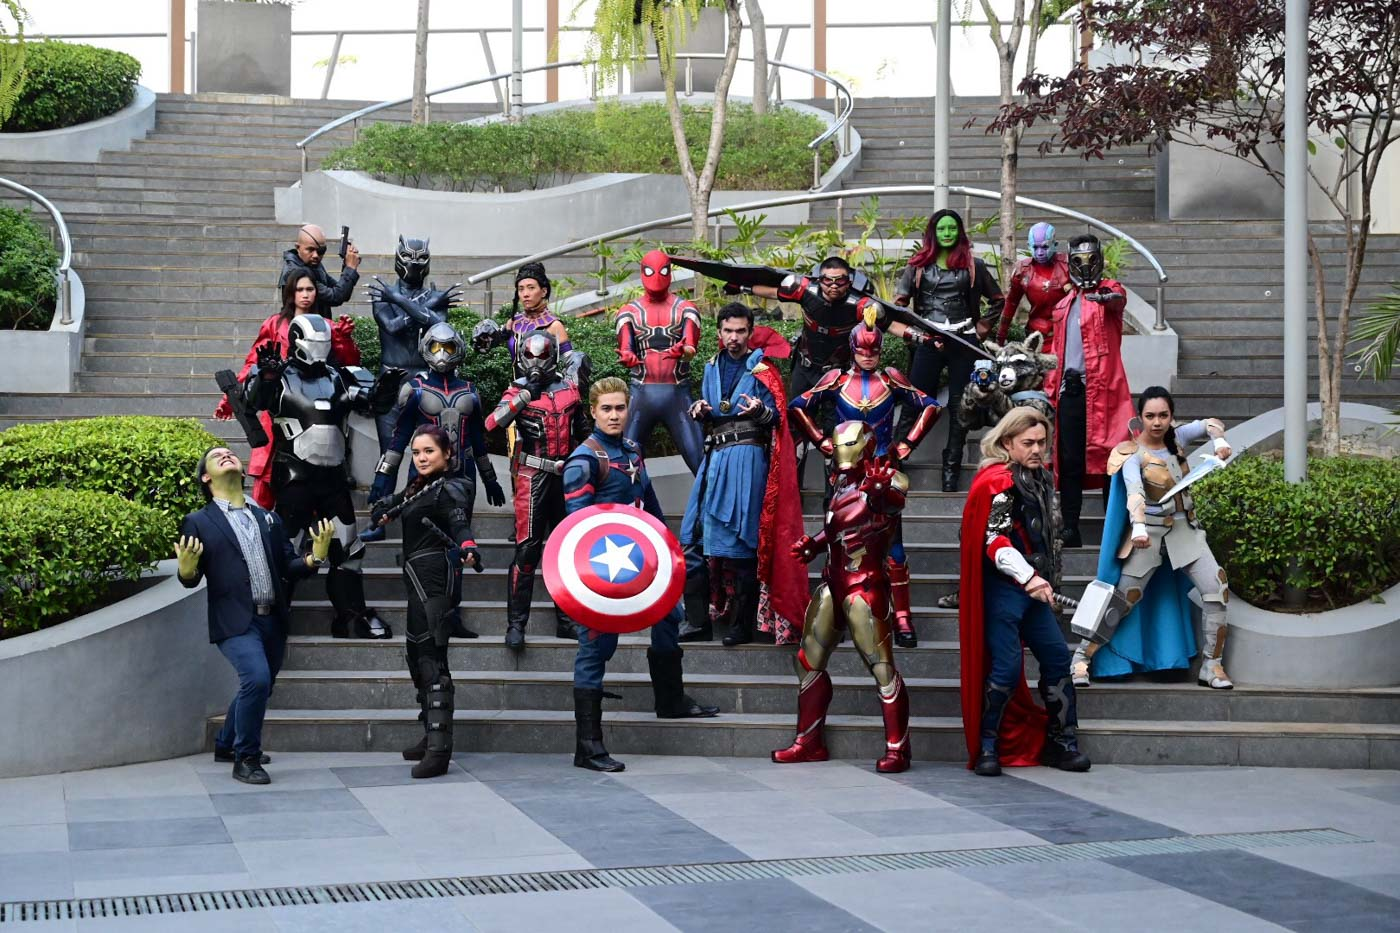 COSPLAY. Marvel Cinematic Universe Fans met the cosplayers of cast of the Avengers: Endgame during the filmu2019s opening day at Ayala Circuit Makati, April 24, 2019. Both kids and adults came in wearing their novelty Marvel shirts eager to watch the film early. Photo by Alecs Ongcal/Rappler